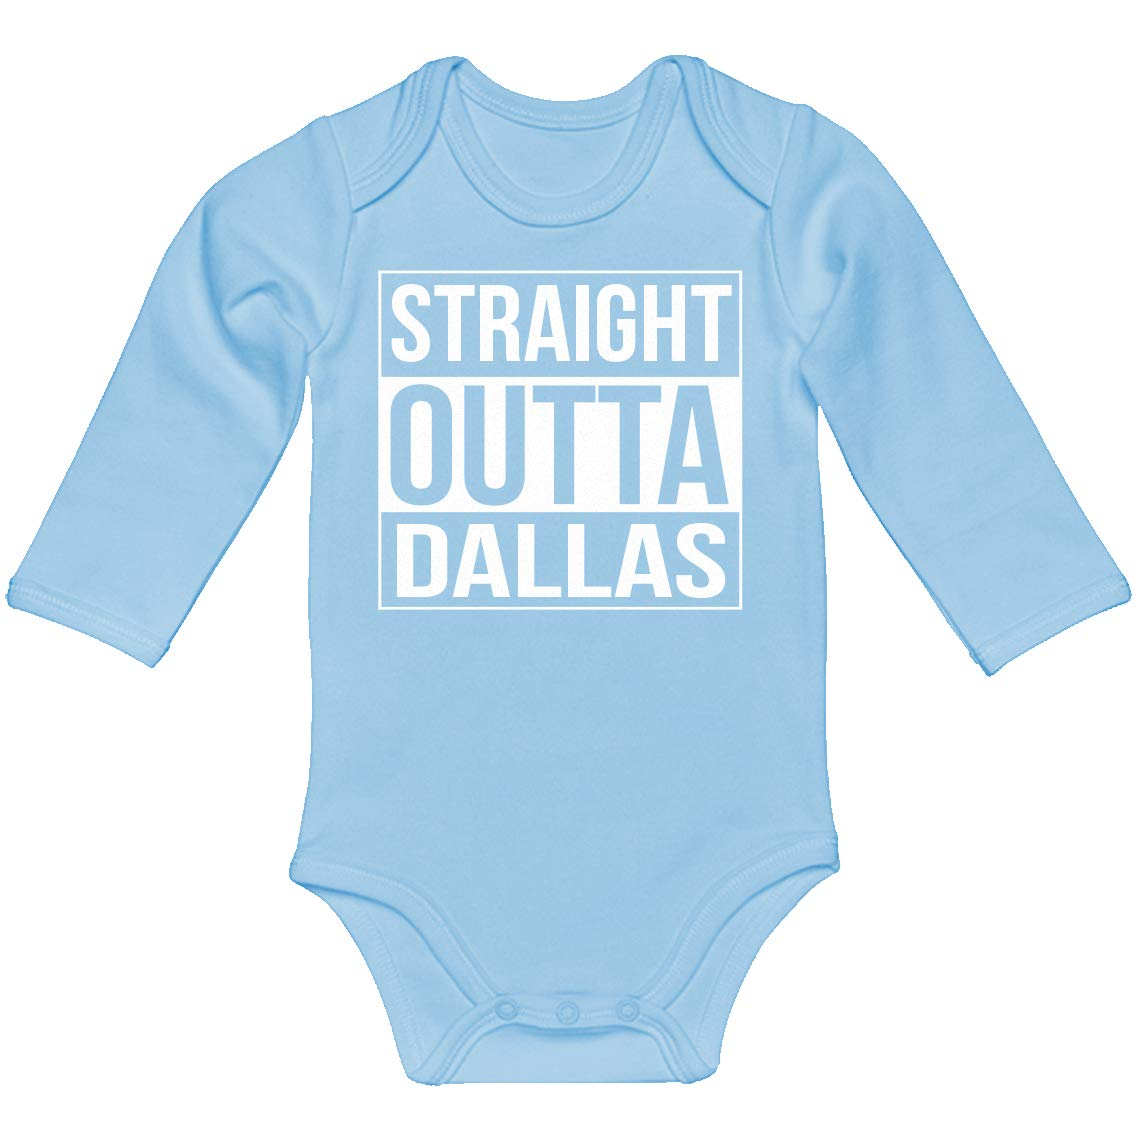 Indica Plateau Baby Romper Straight Outta Dallas 100/% Cotton Long Sleeve Infant Bodysuit